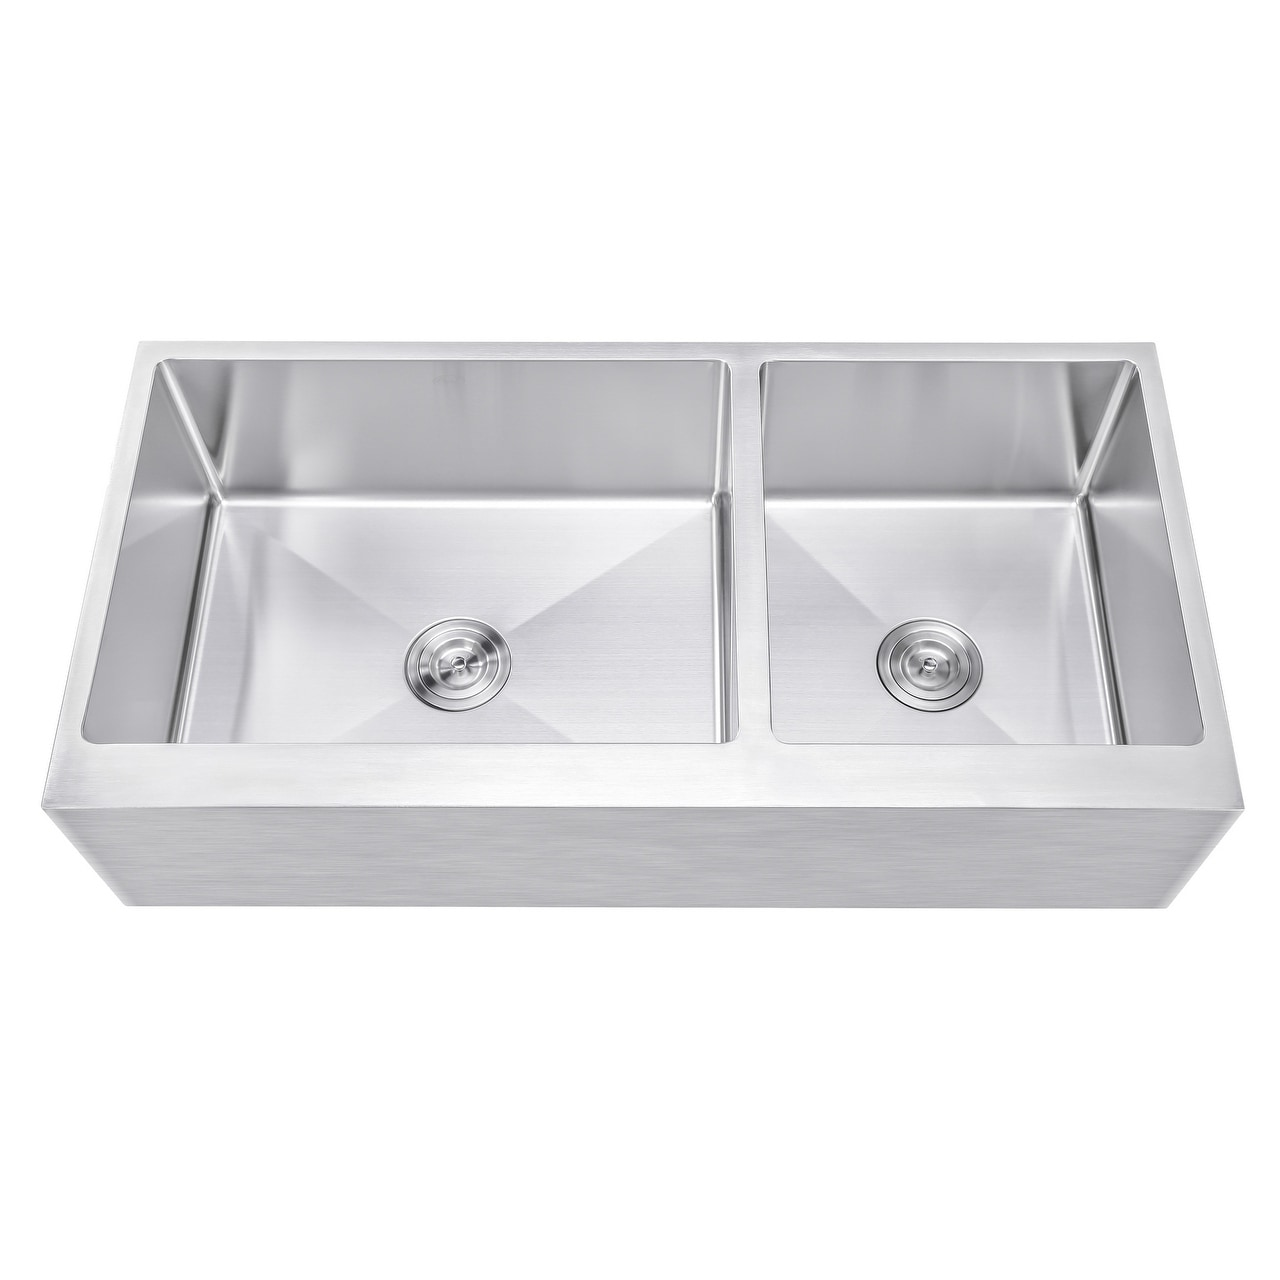 ariel 42 inch 60 40 offset double bowl stainless steel farmhouse sink flat apron front 15mm radius coved corners